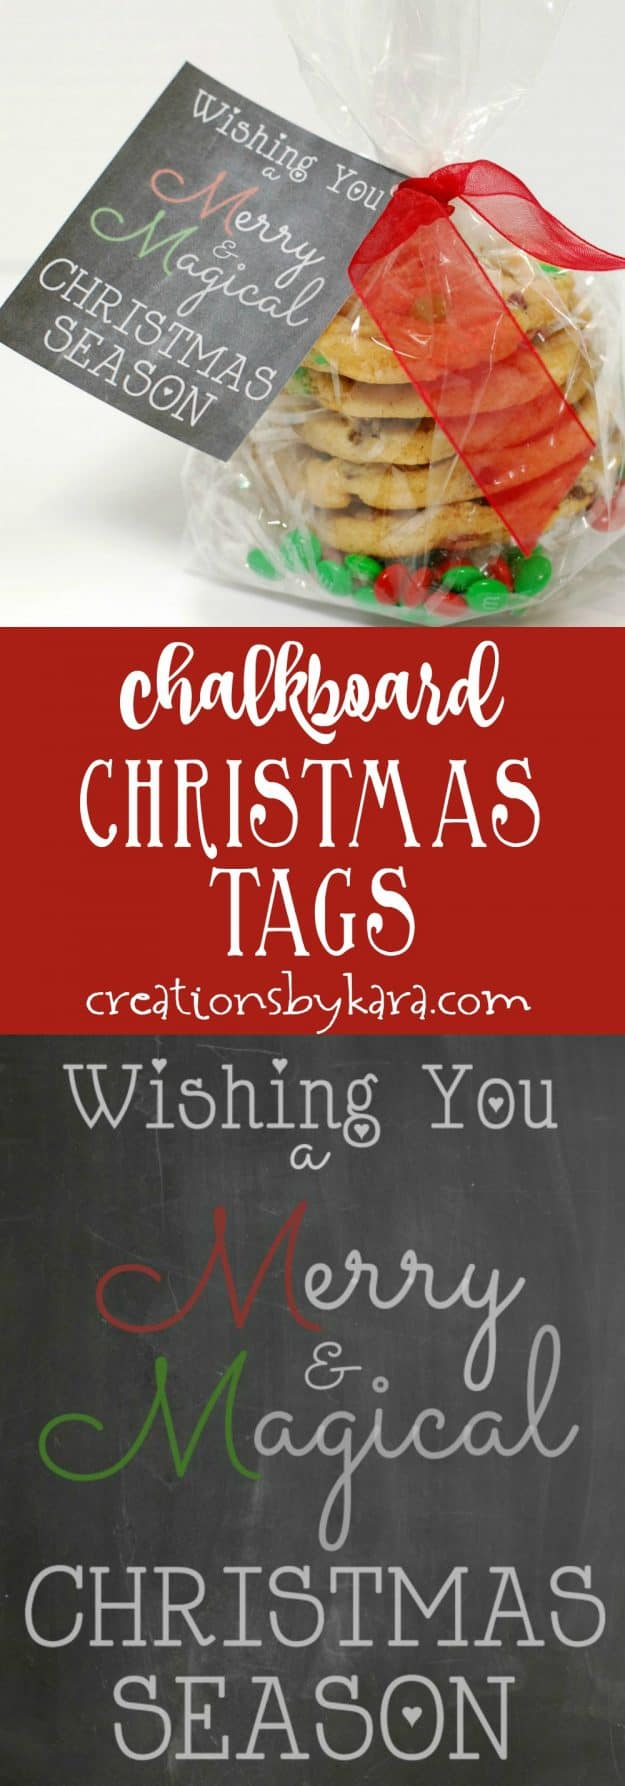 Add this free printable Christmas tag to a bag of M&Ms or goodies for a fast and fun Christmas gift!